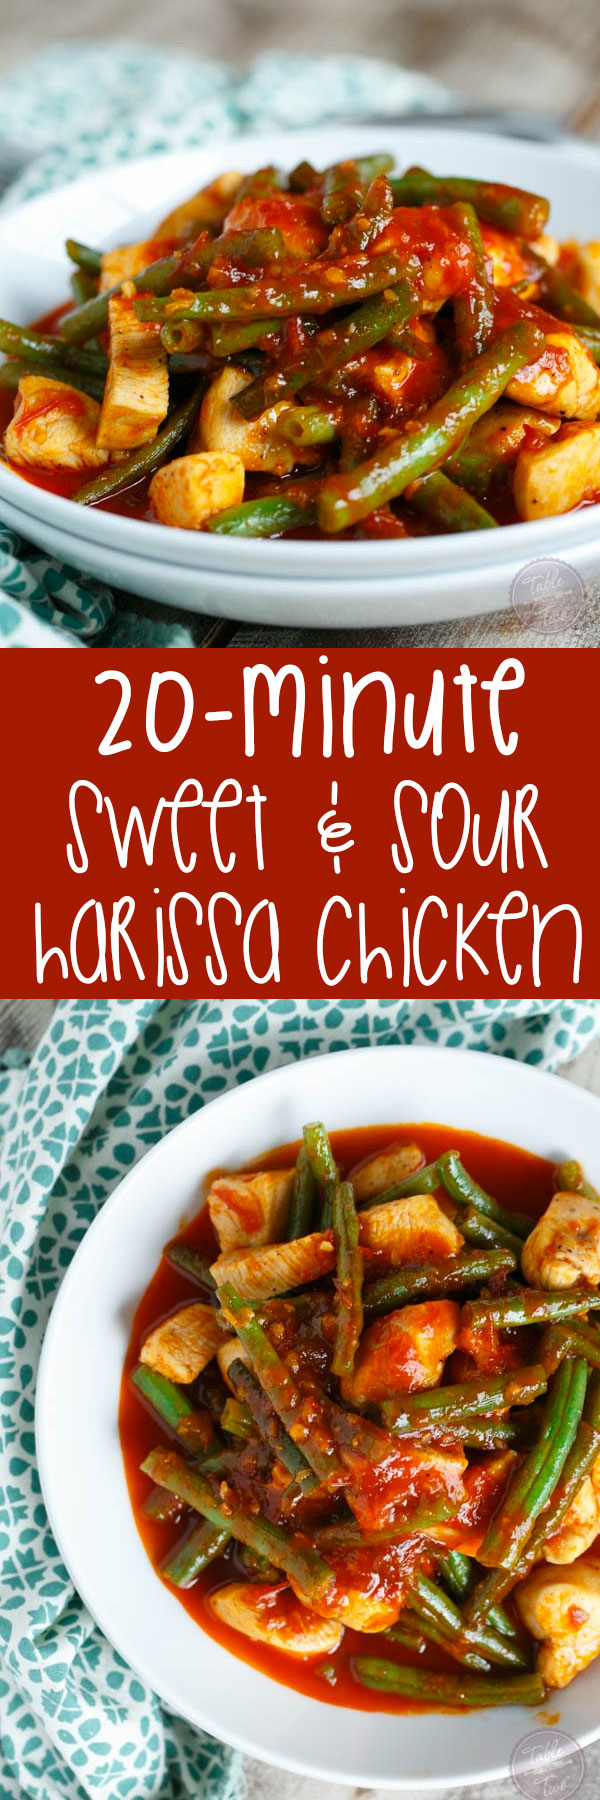 This 20-minute sweet & sour harissa chicken and green beans is the perfect combo of flavors for your weeknight dinner!